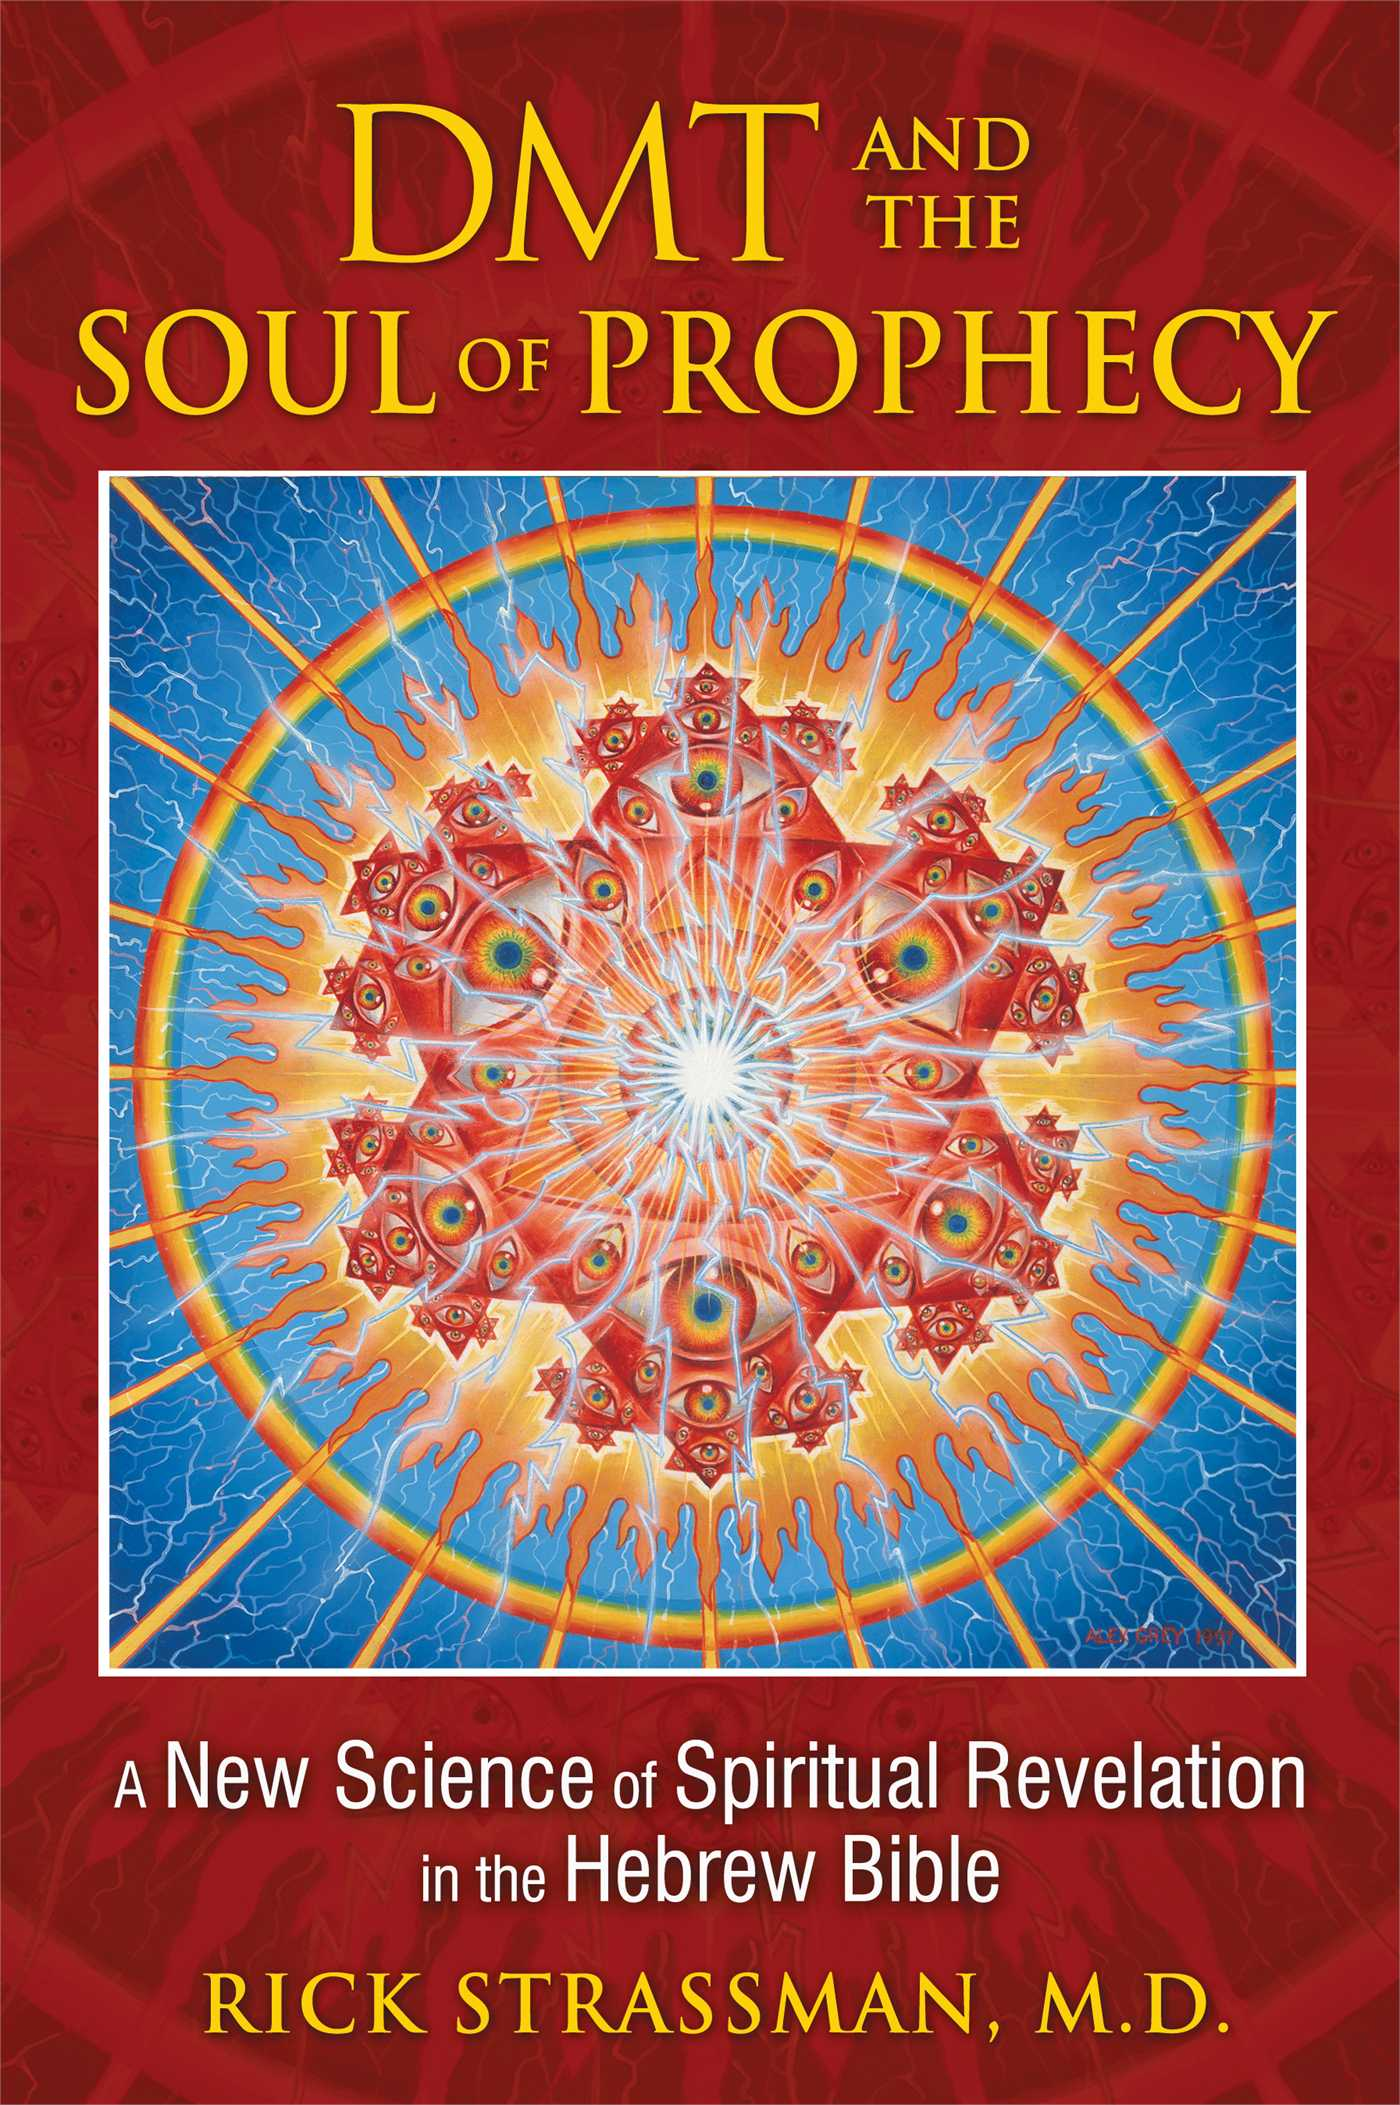 Dmt and the soul of prophecy 9781594773426 hr